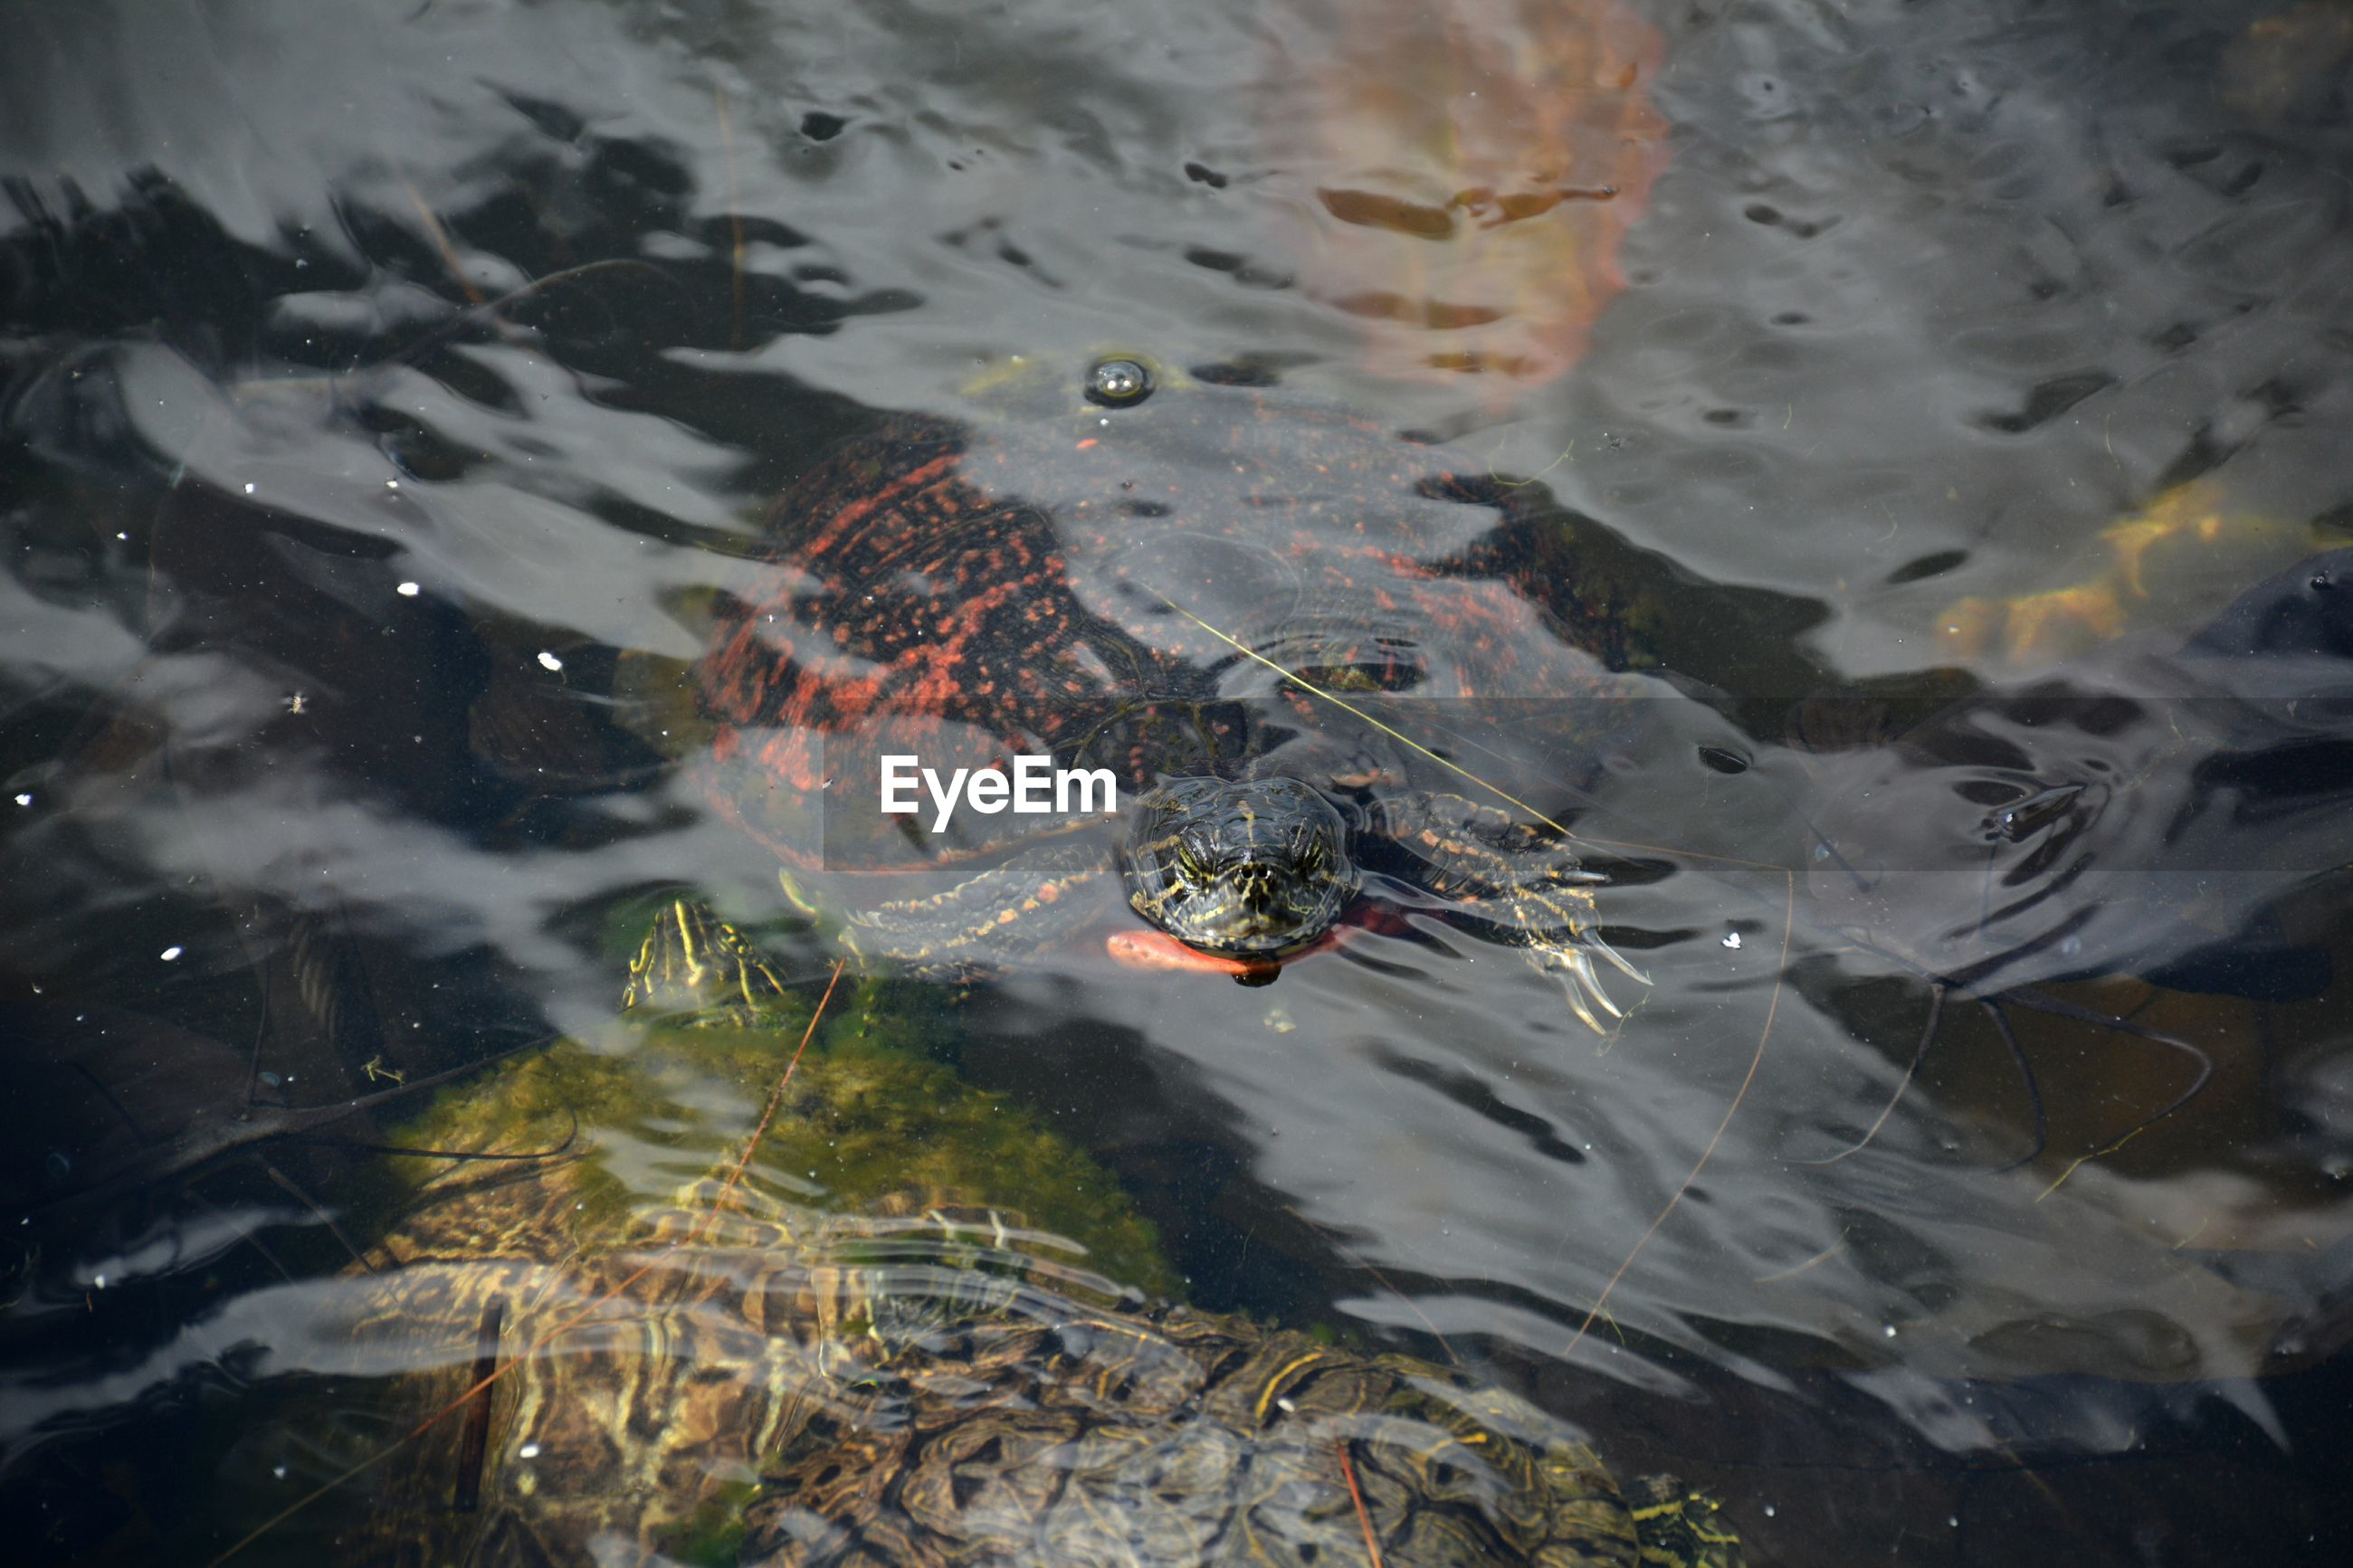 Florida red-bellied cooters or florida red belly turtle submerged in water